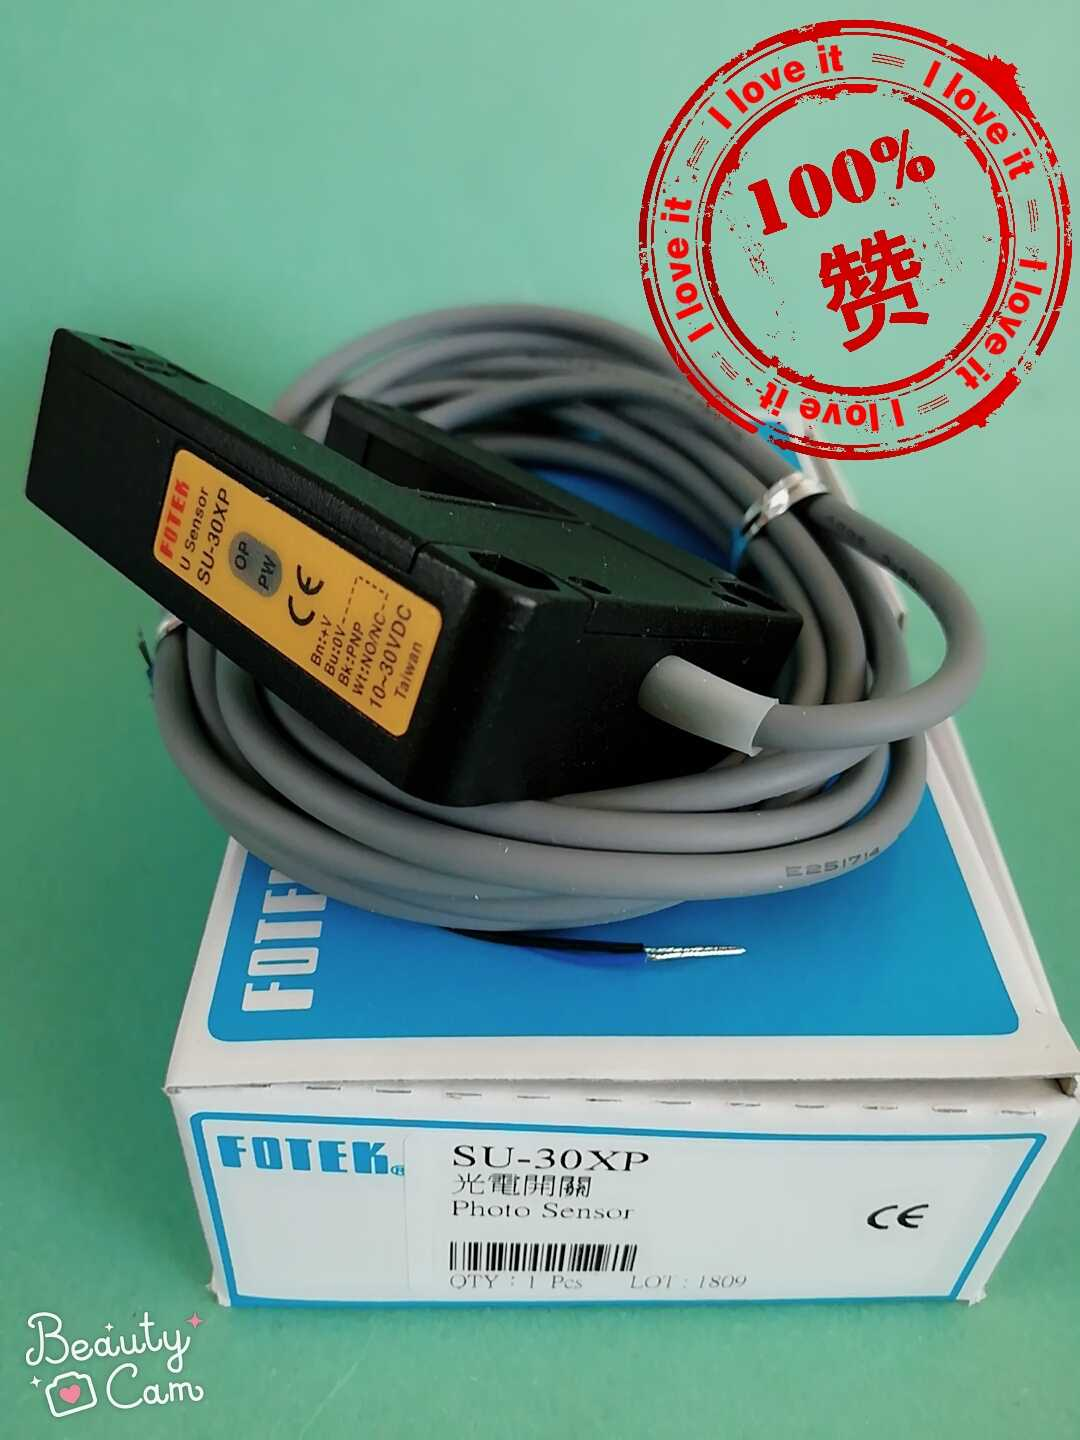 Imported Electromechanical SU-30XP U-type Photoelectric Switch Sensor Is One-tenth Off